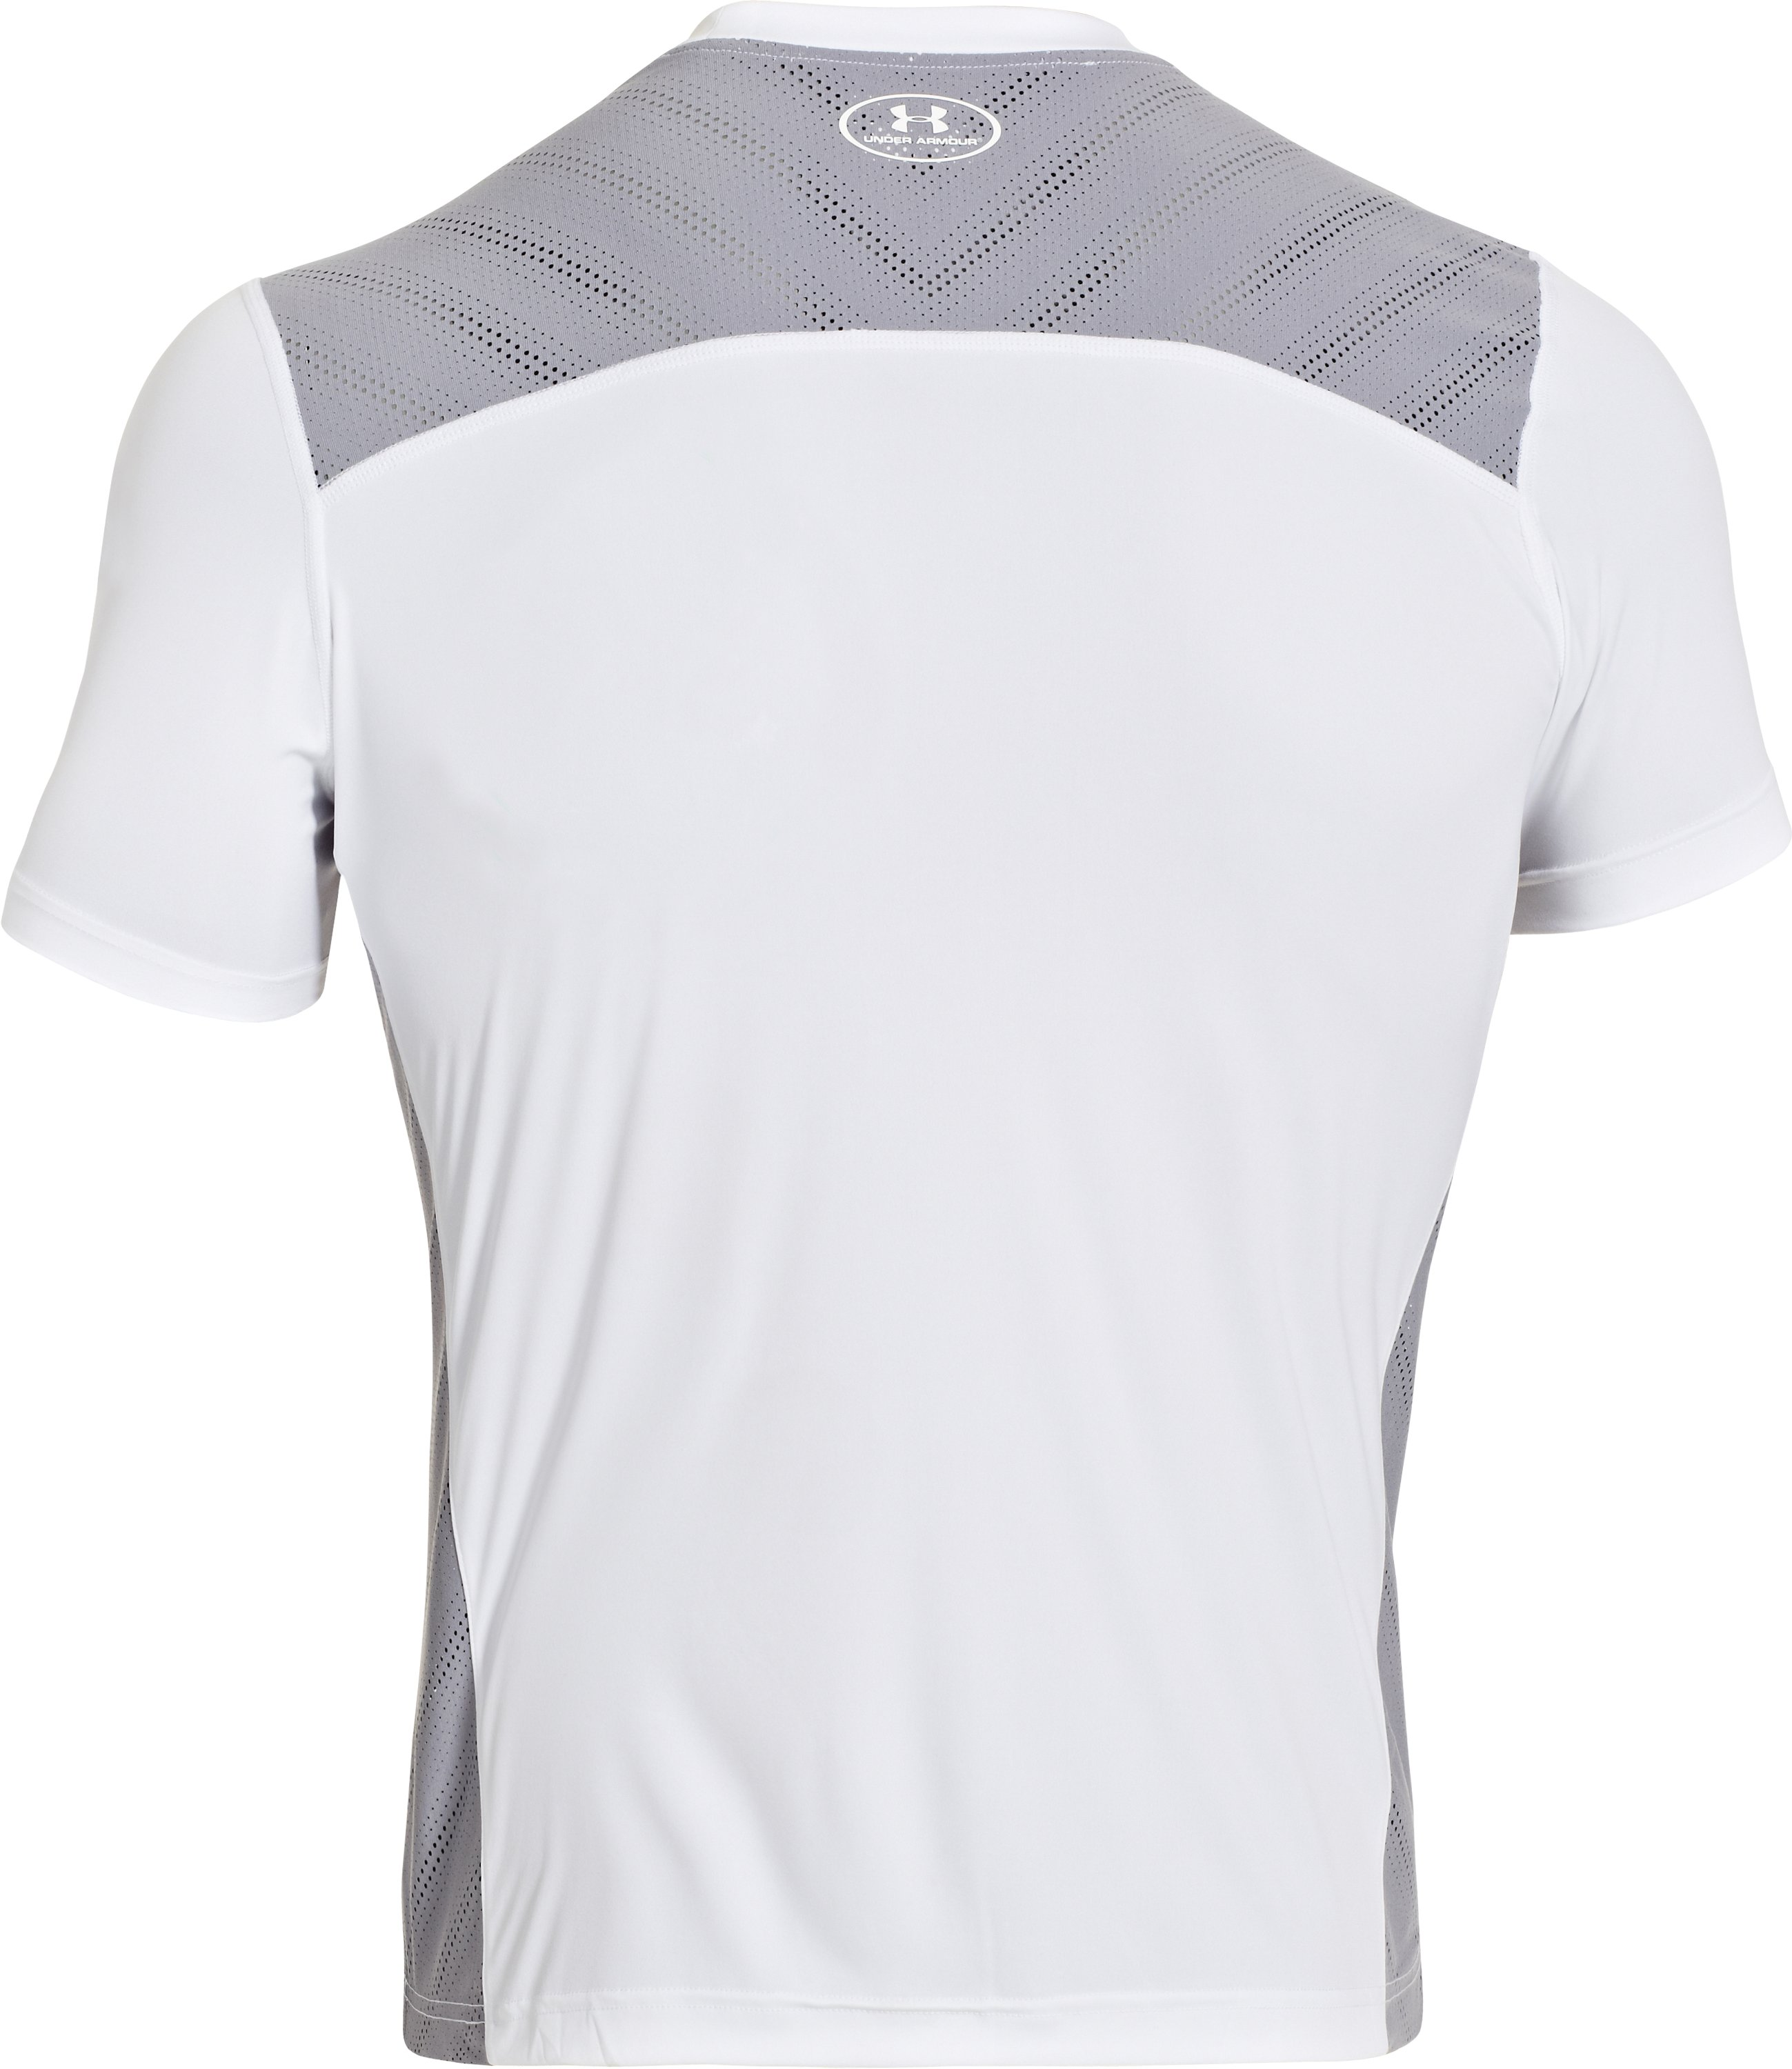 Men's HeatGear® ArmourVent™ Training T-Shirt, White, undefined